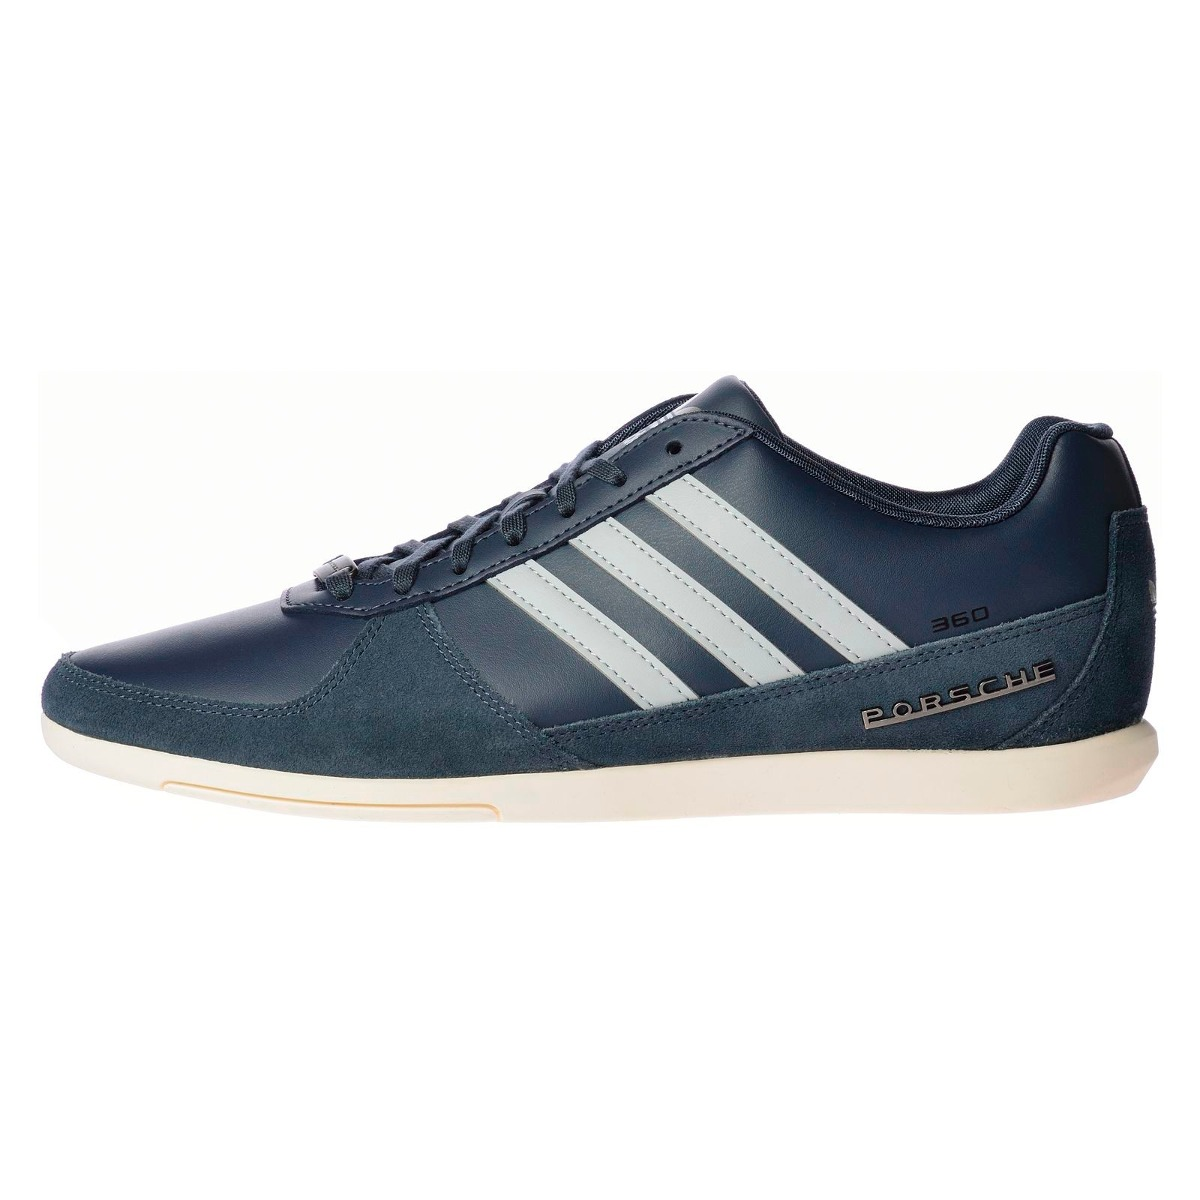 zapatillas adidas originals porsche 360 1.0   brand sports. Cargando zoom. 19bd128872f